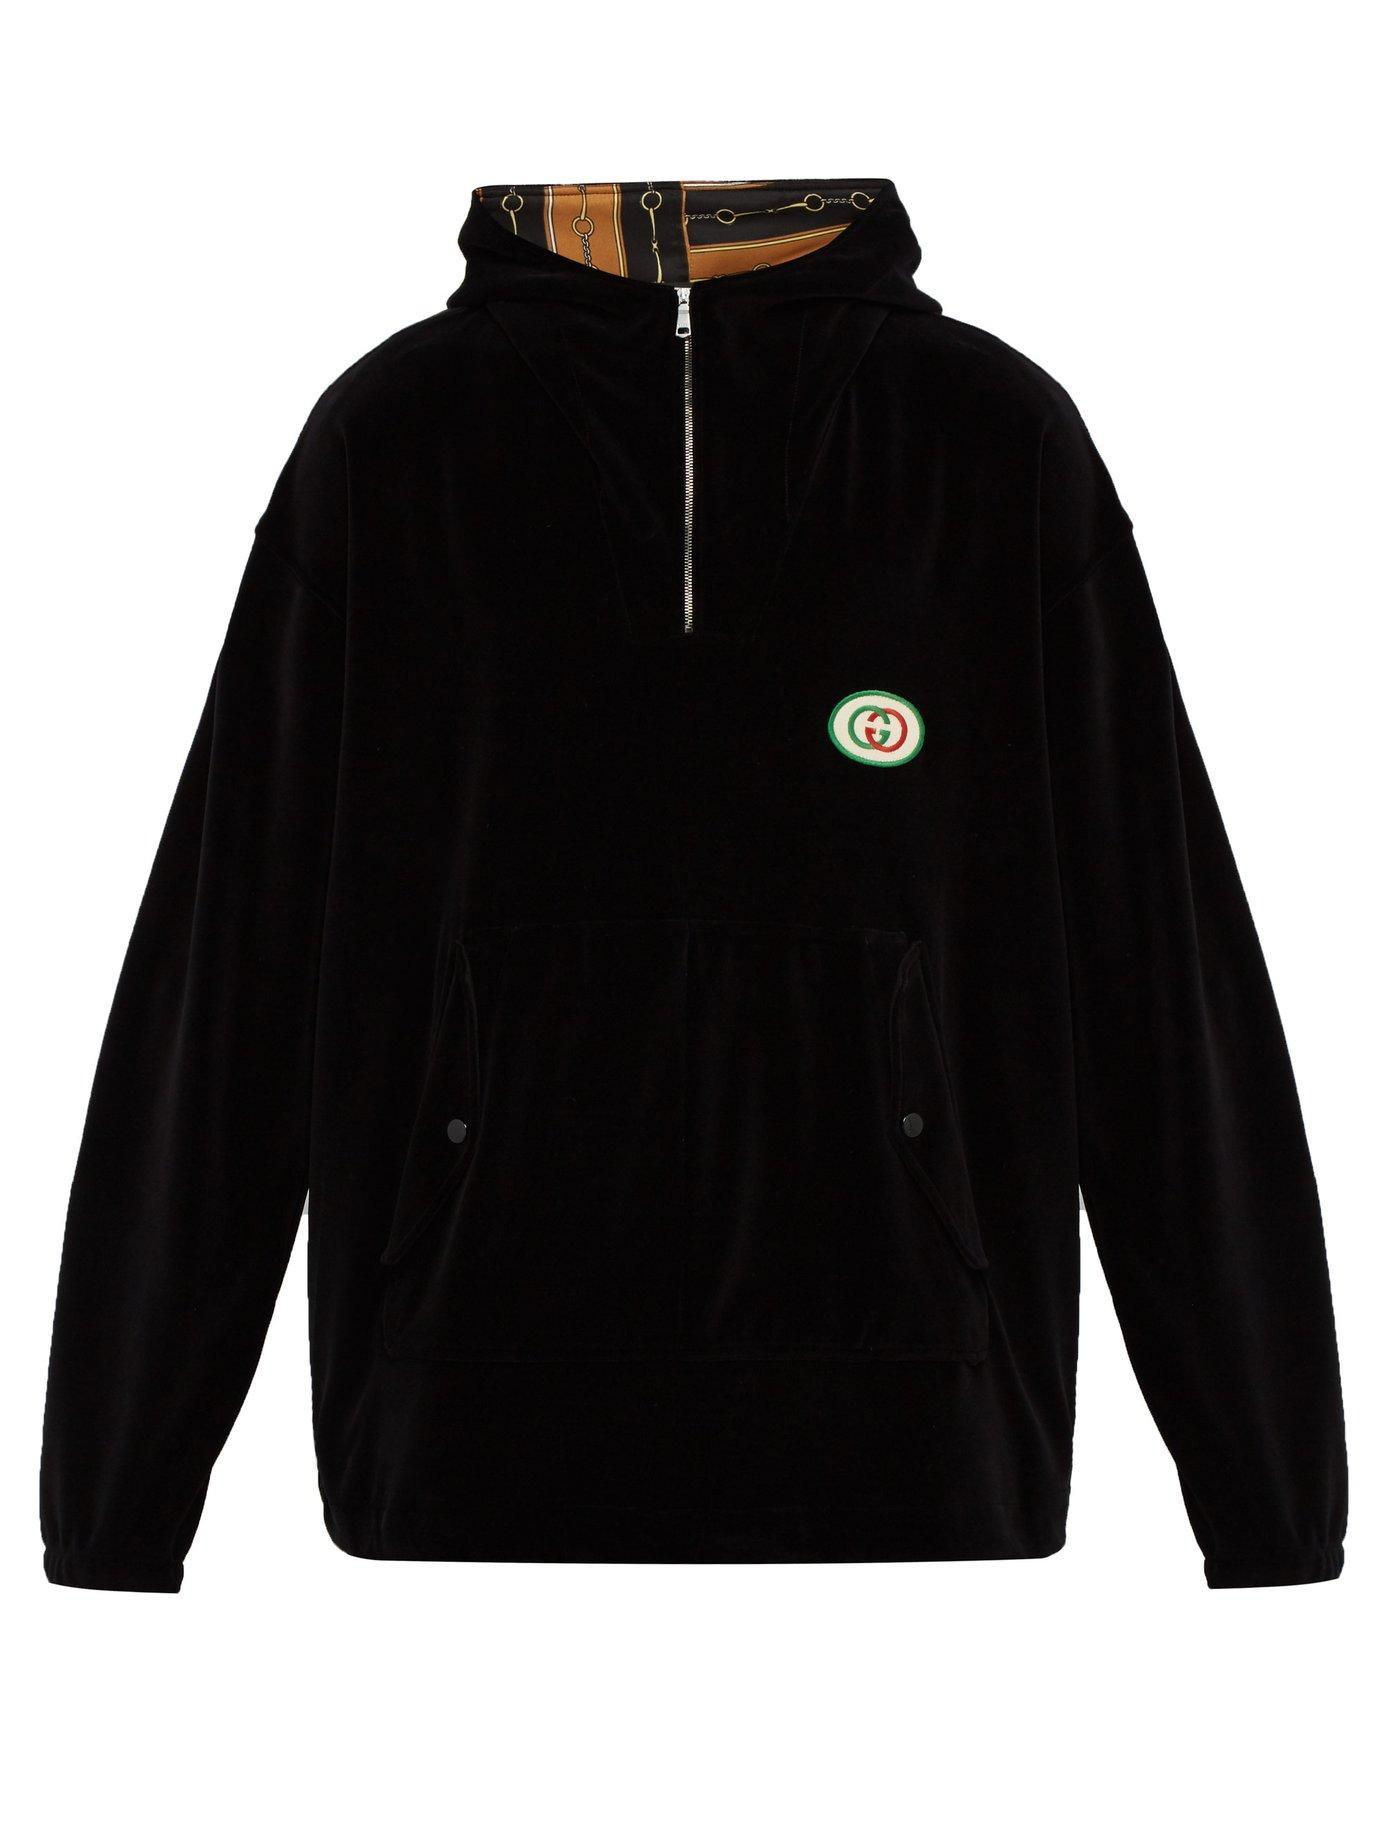 86d77b165ff Lyst - Gucci Logo Embroidered Velvet Hooded Sweatshirt in Black for Men